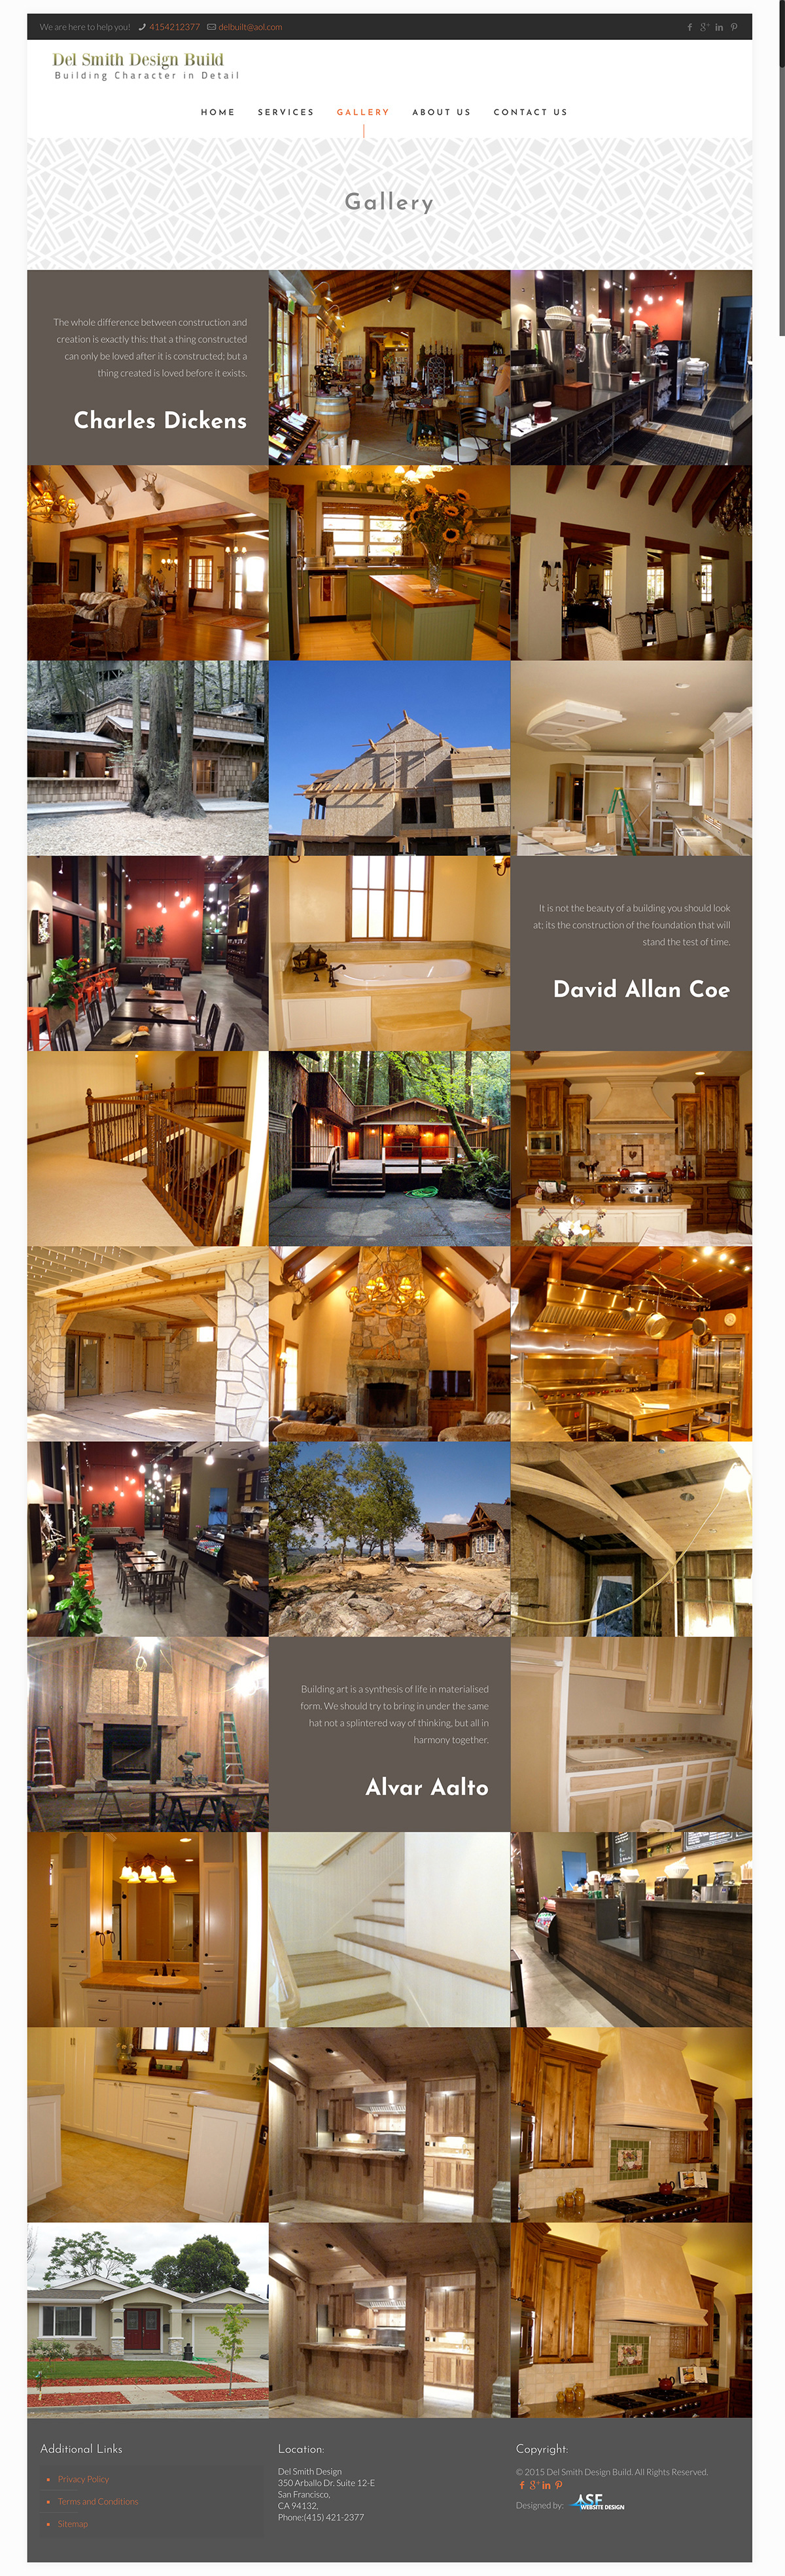 Del Smith Design Build gallery page design